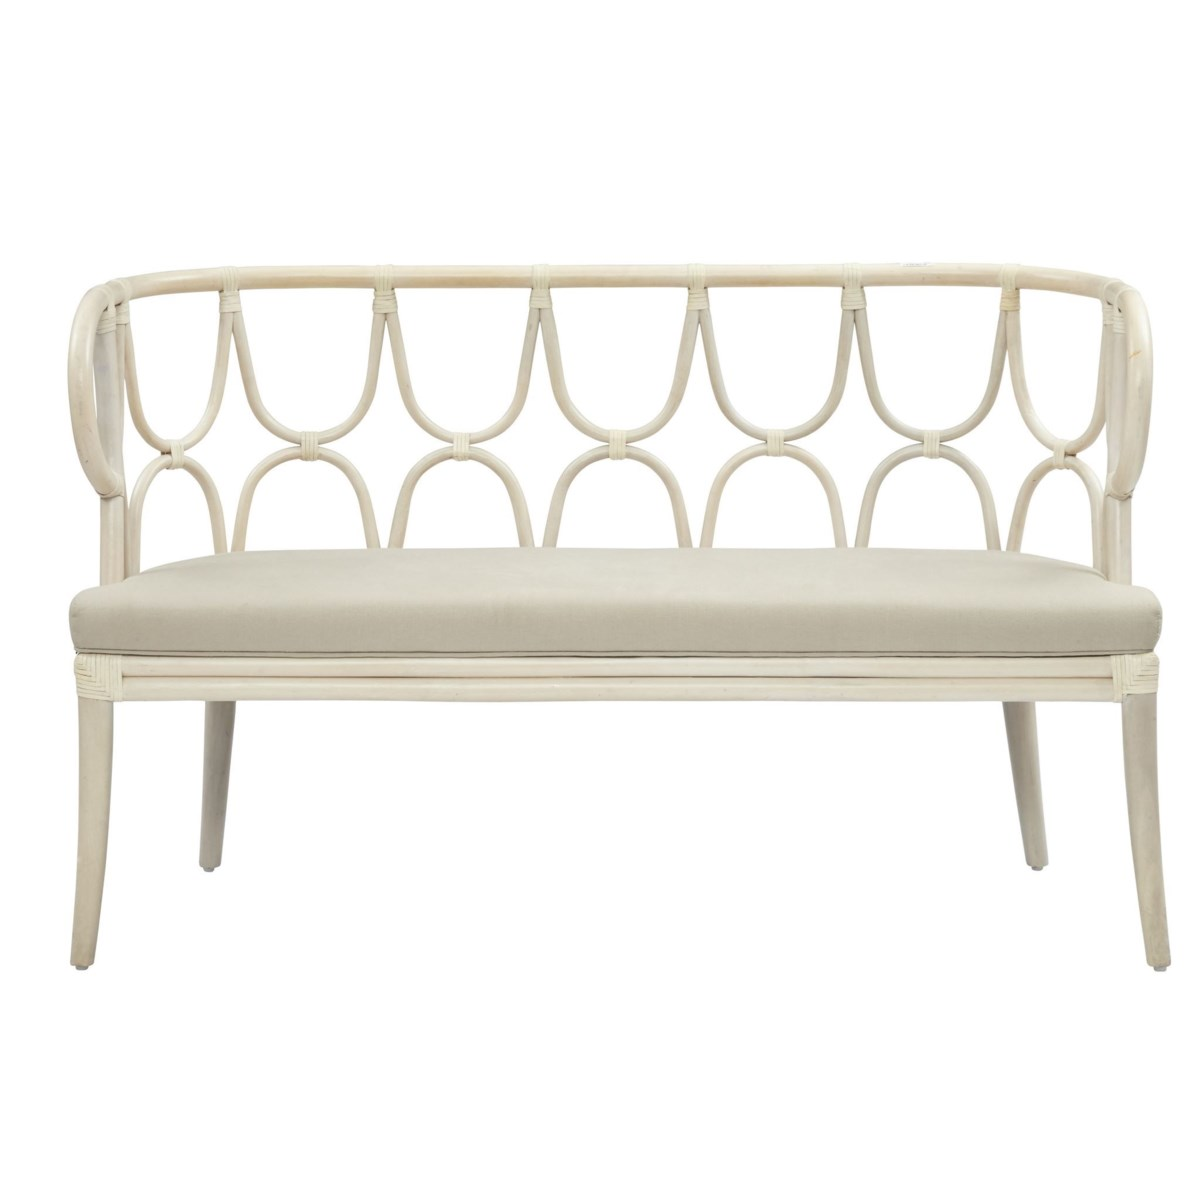 Simone Bench, Curved Back Frame Color - LinenCushion Color - Cream